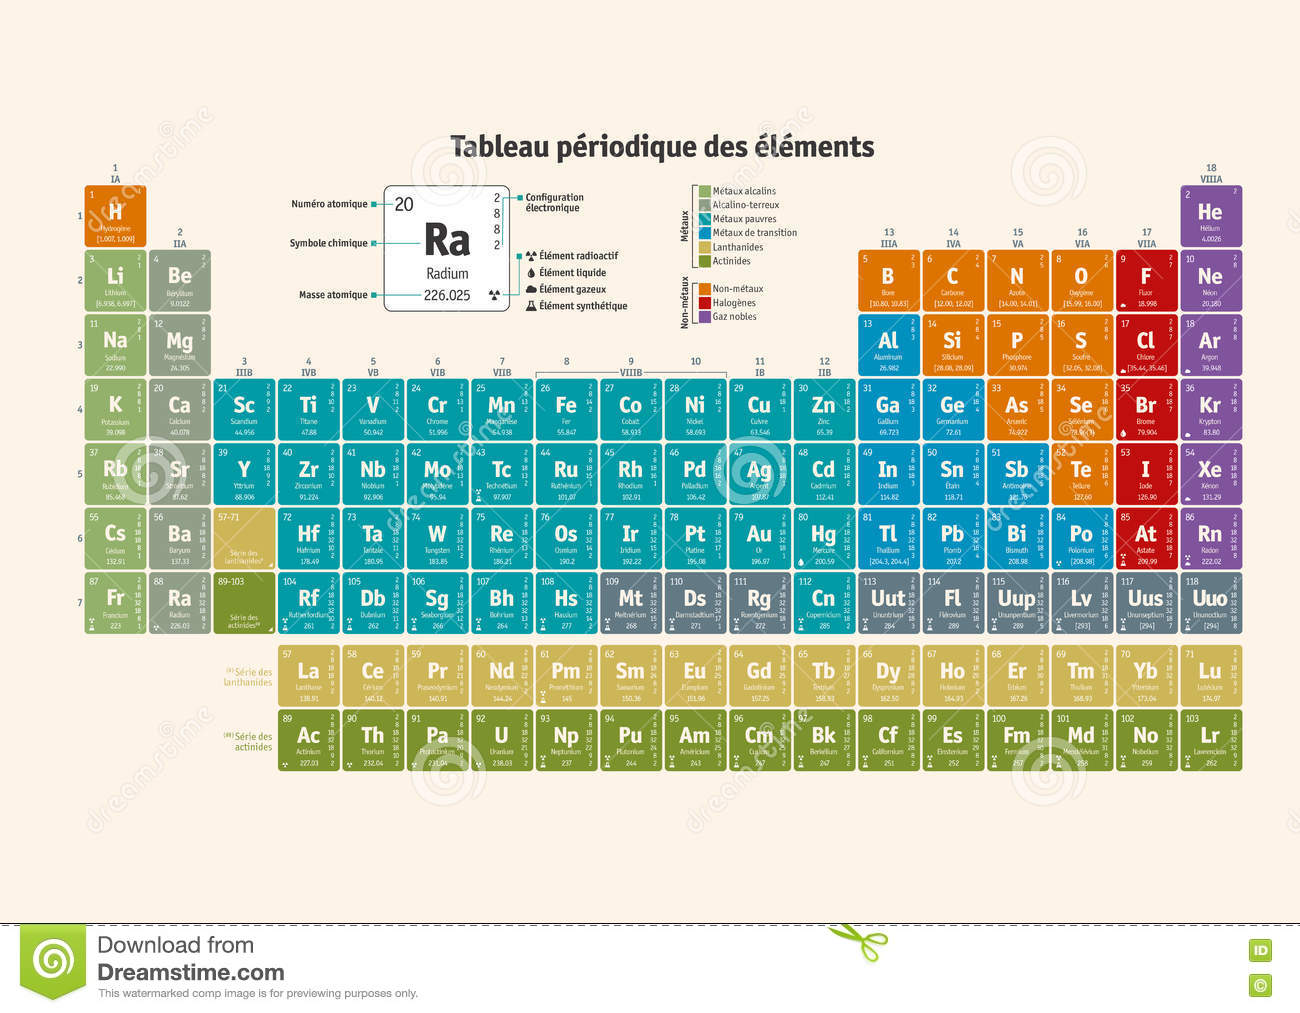 Periodic table of the chemical elements french version stock download comp urtaz Image collections